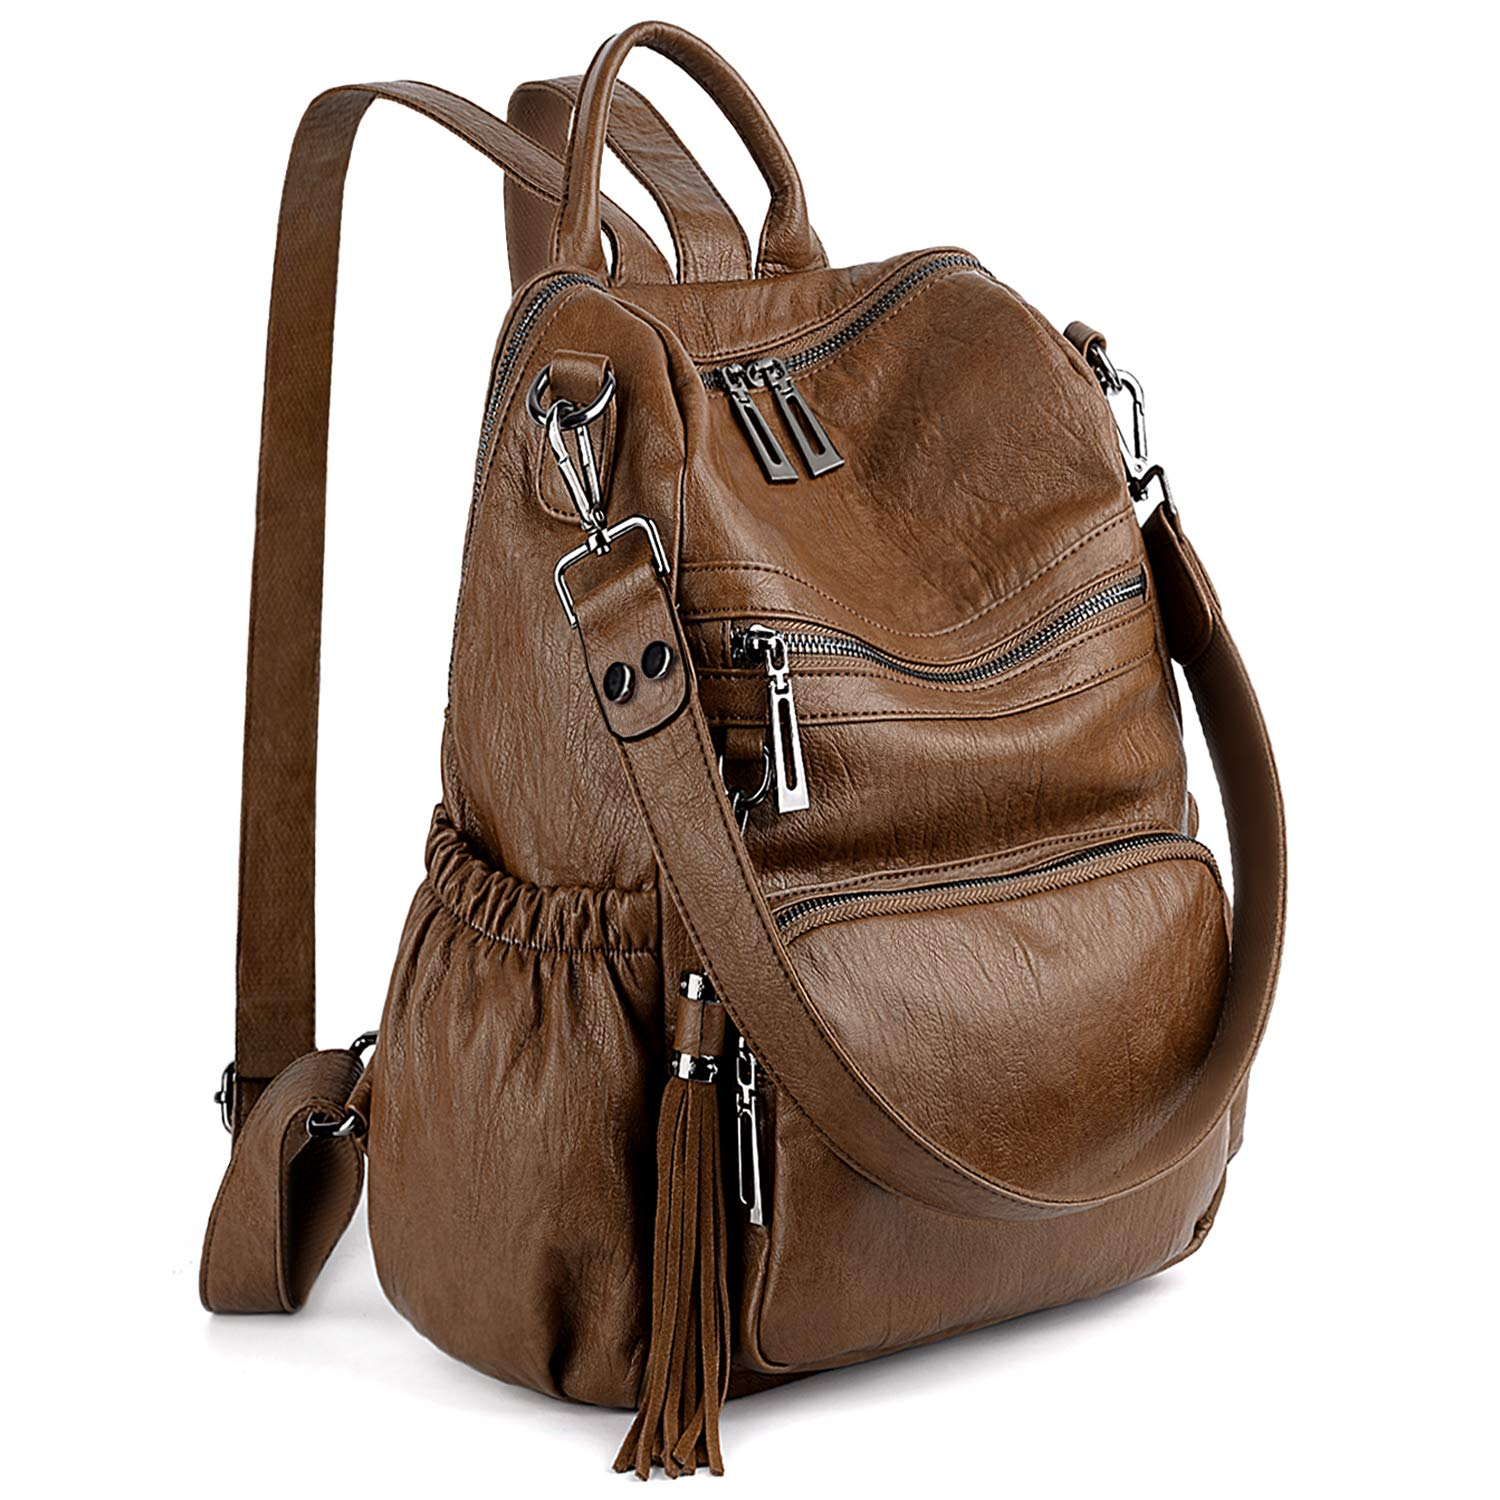 UTO Women Backpack Purse PU Washed Leather Convertible Ladies Rucksack Tassel Zipper Pocket Shoulder Bag A Brown by UTO